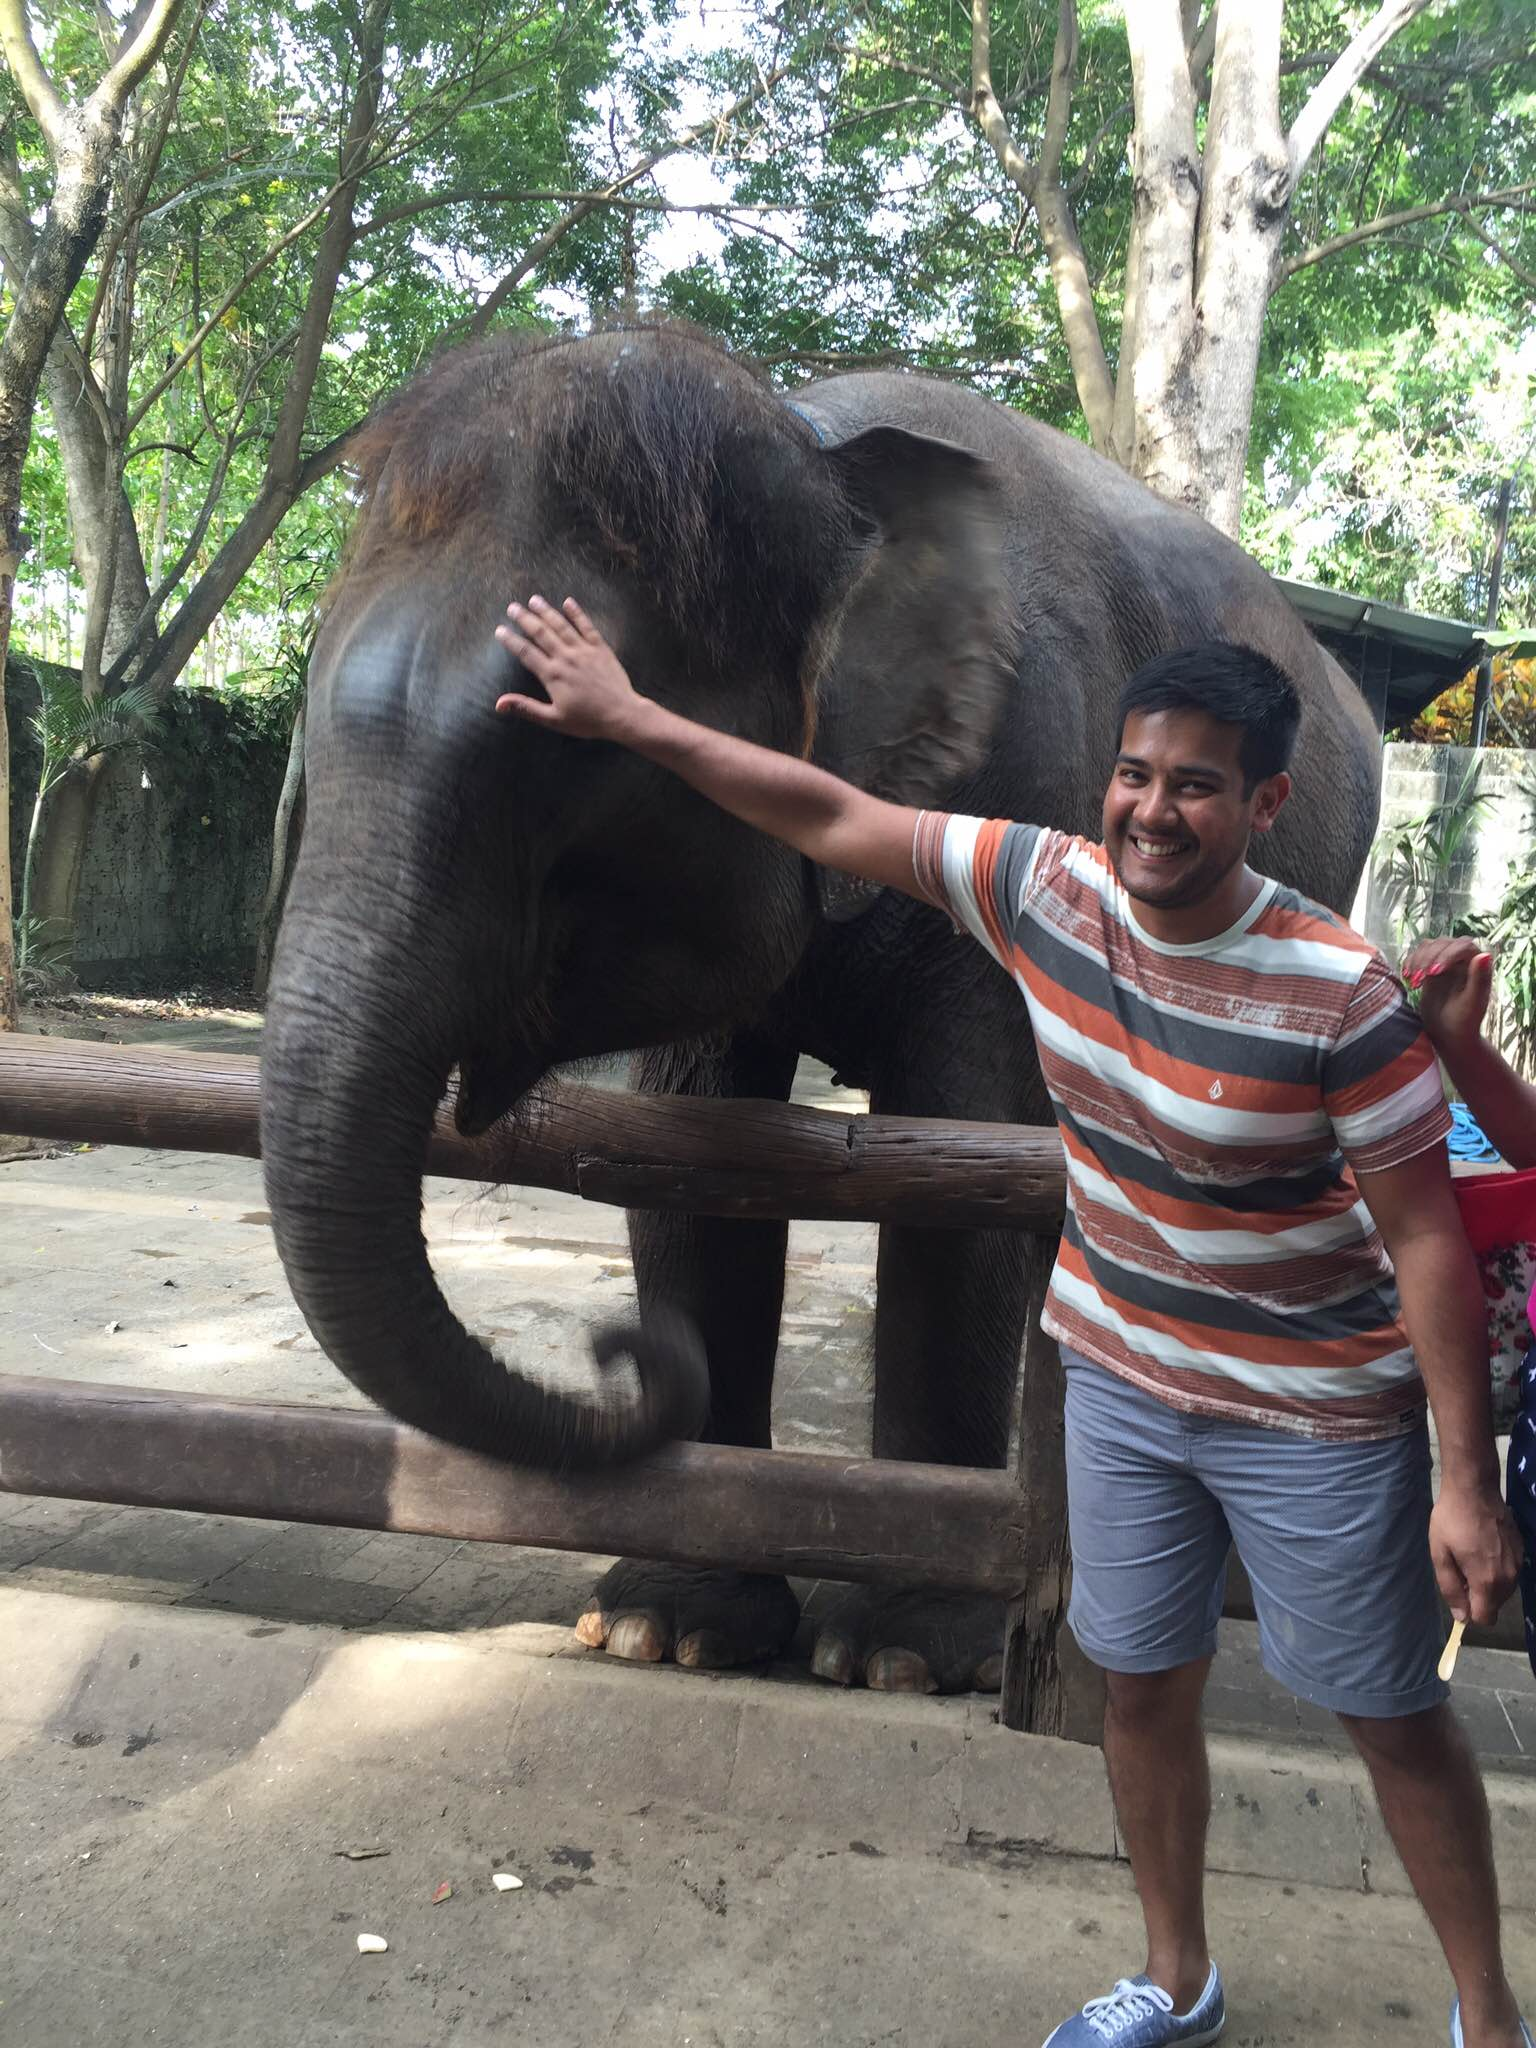 That's me with the Baby Elelphant